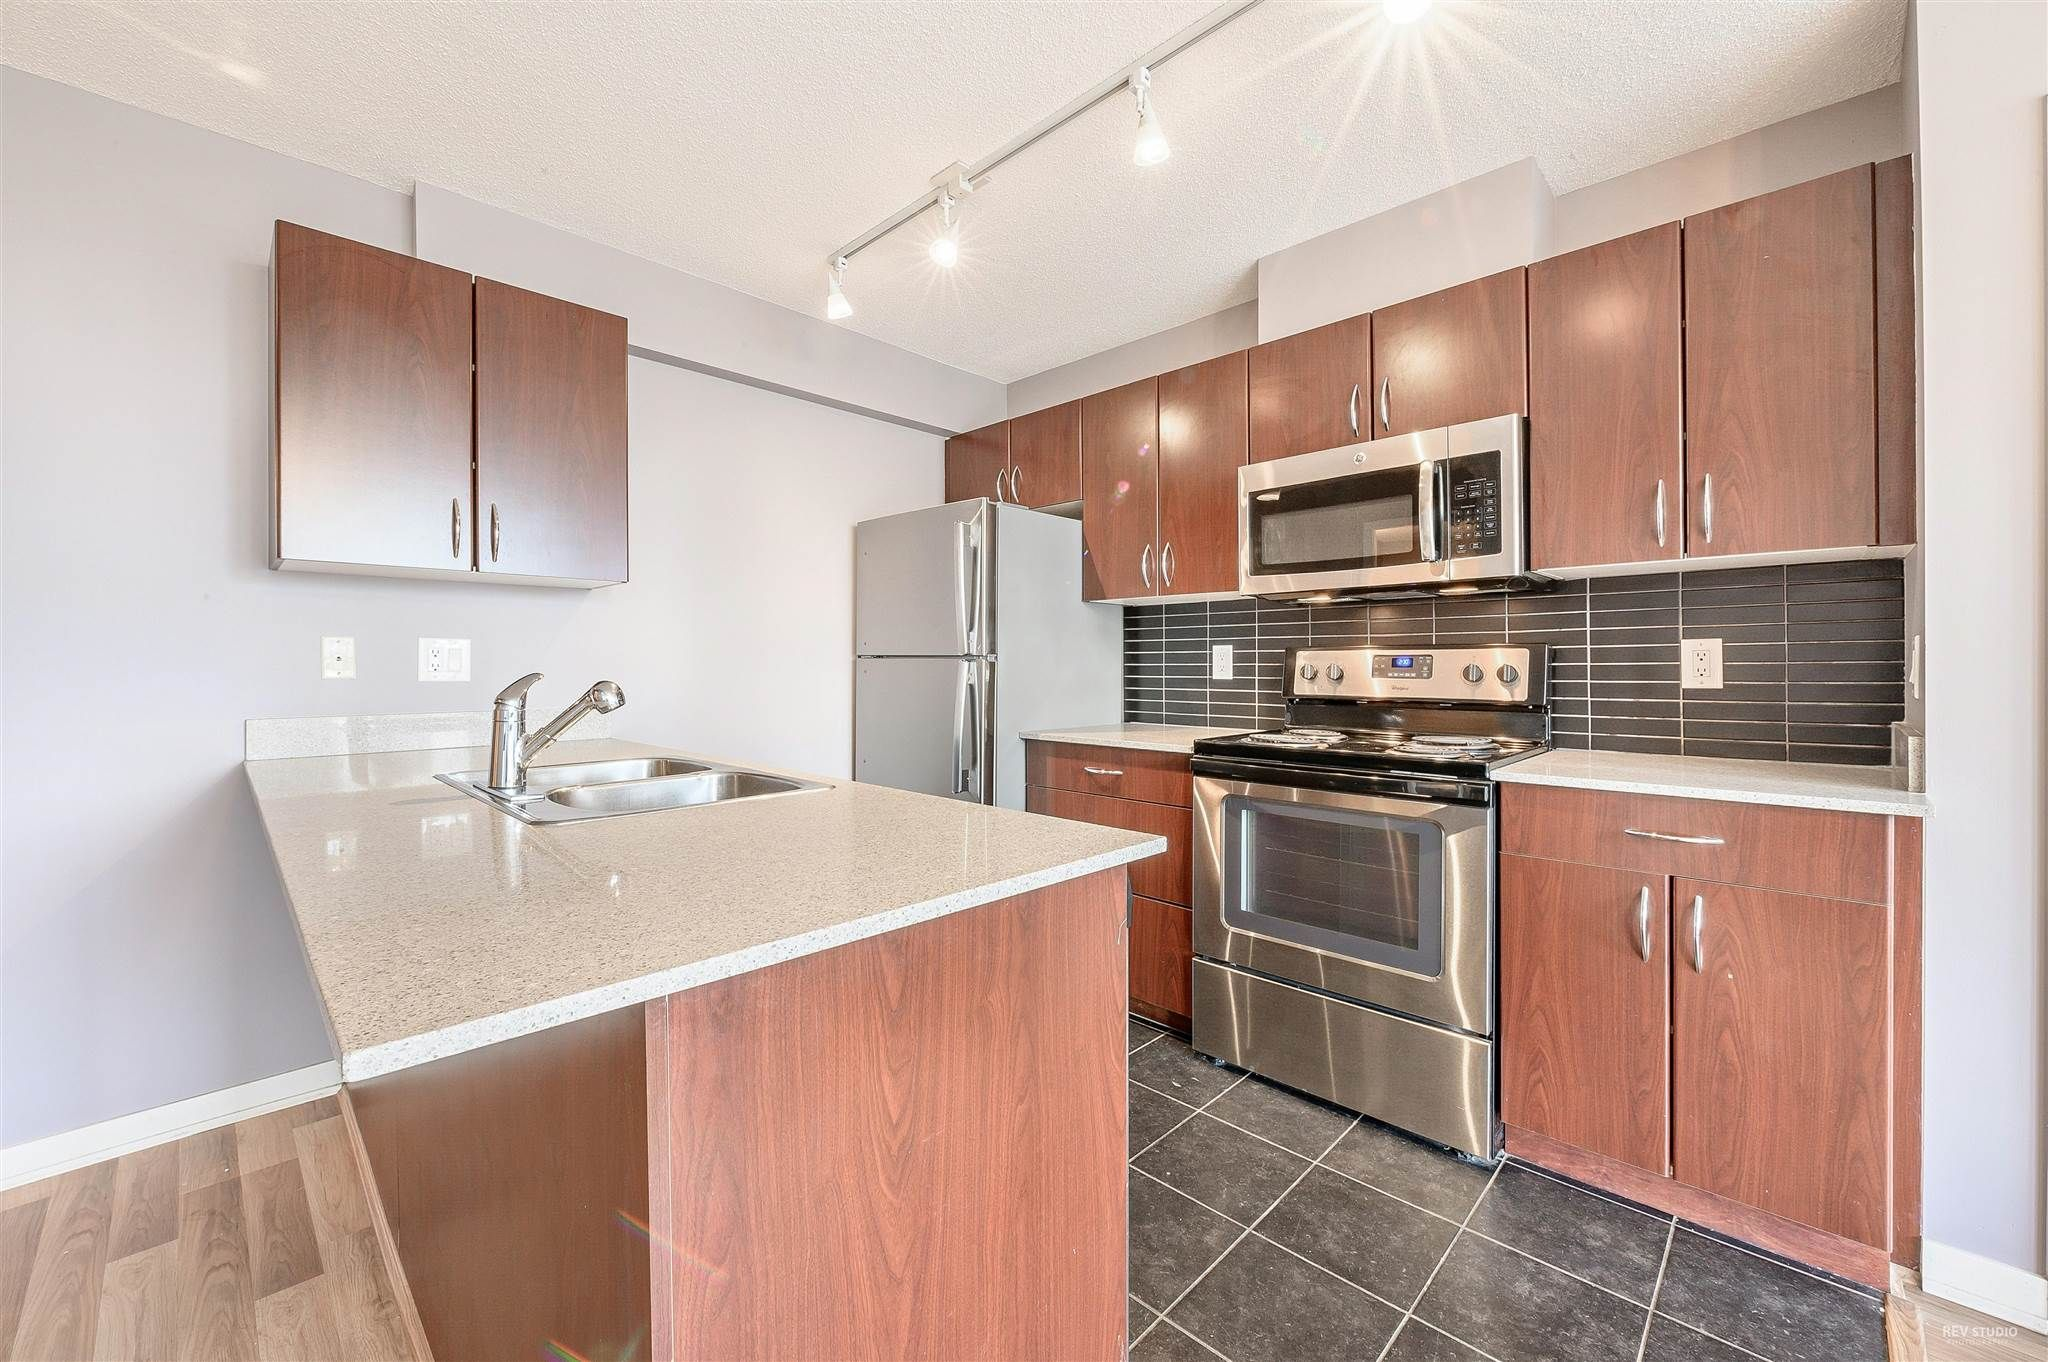 """Main Photo: 1206 933 HORNBY Street in Vancouver: Downtown VW Condo for sale in """"ELECTRIC AVENUE"""" (Vancouver West)  : MLS®# R2605063"""